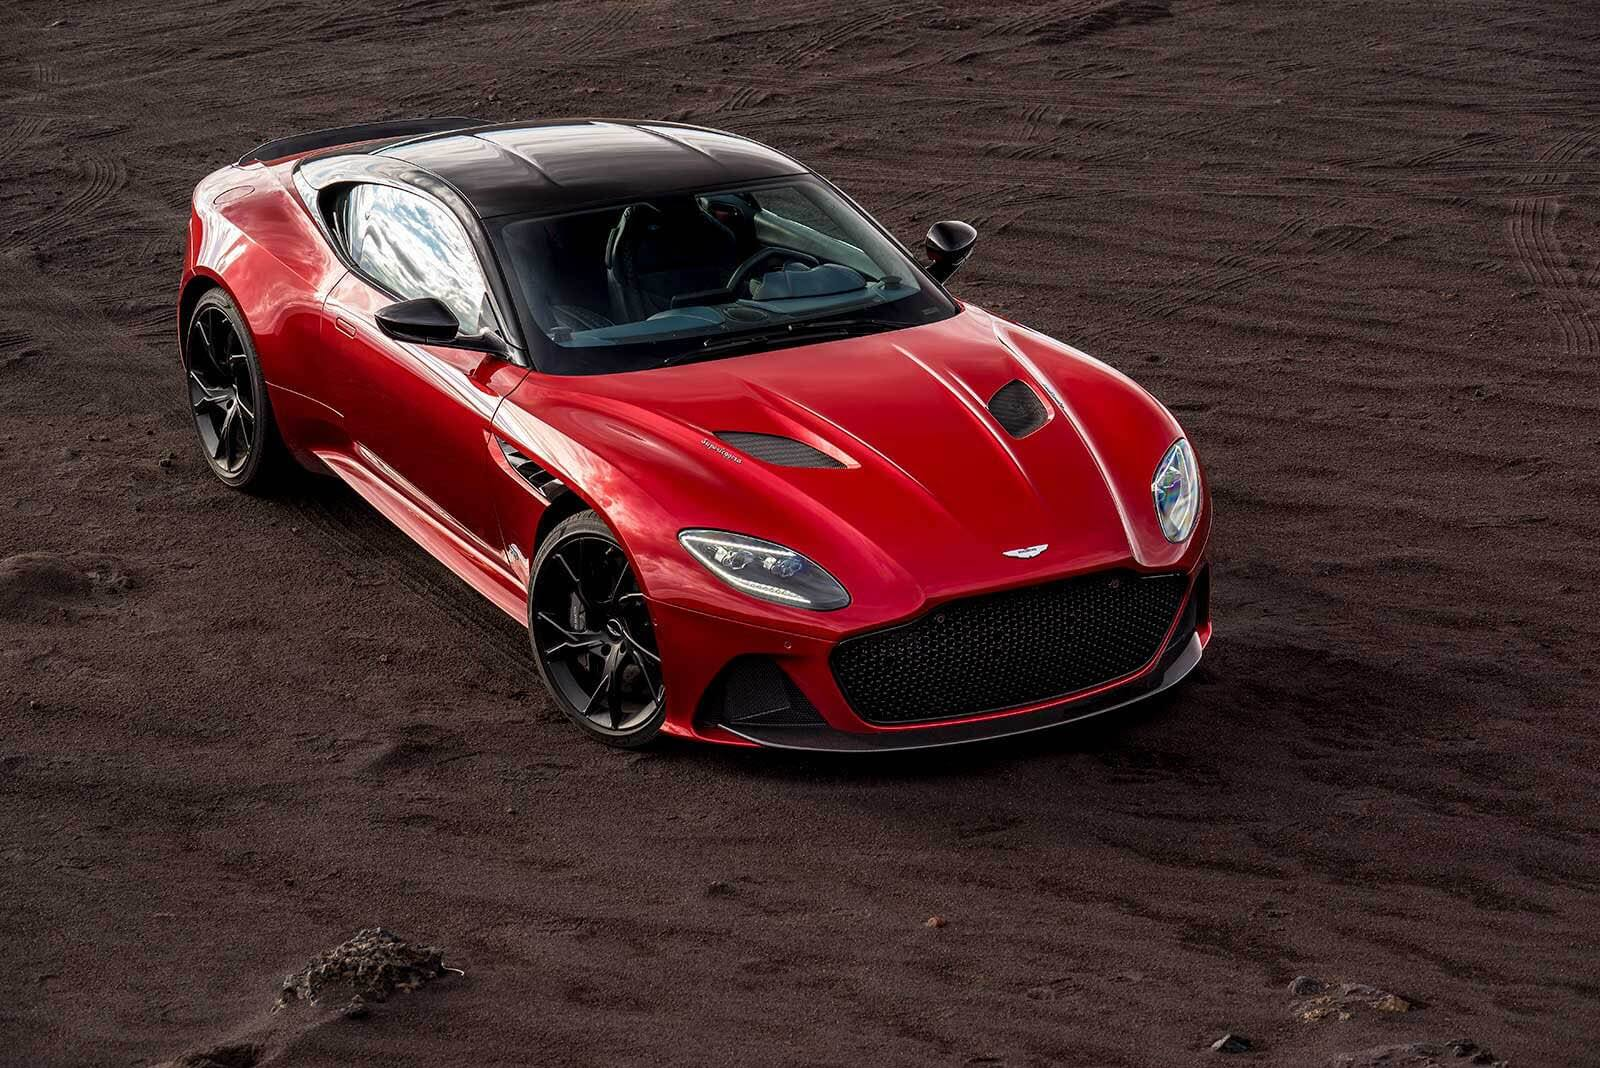 Aston Martin DBS Superleggera LEAKED – Somewhat sooner than Aston Martin Planned